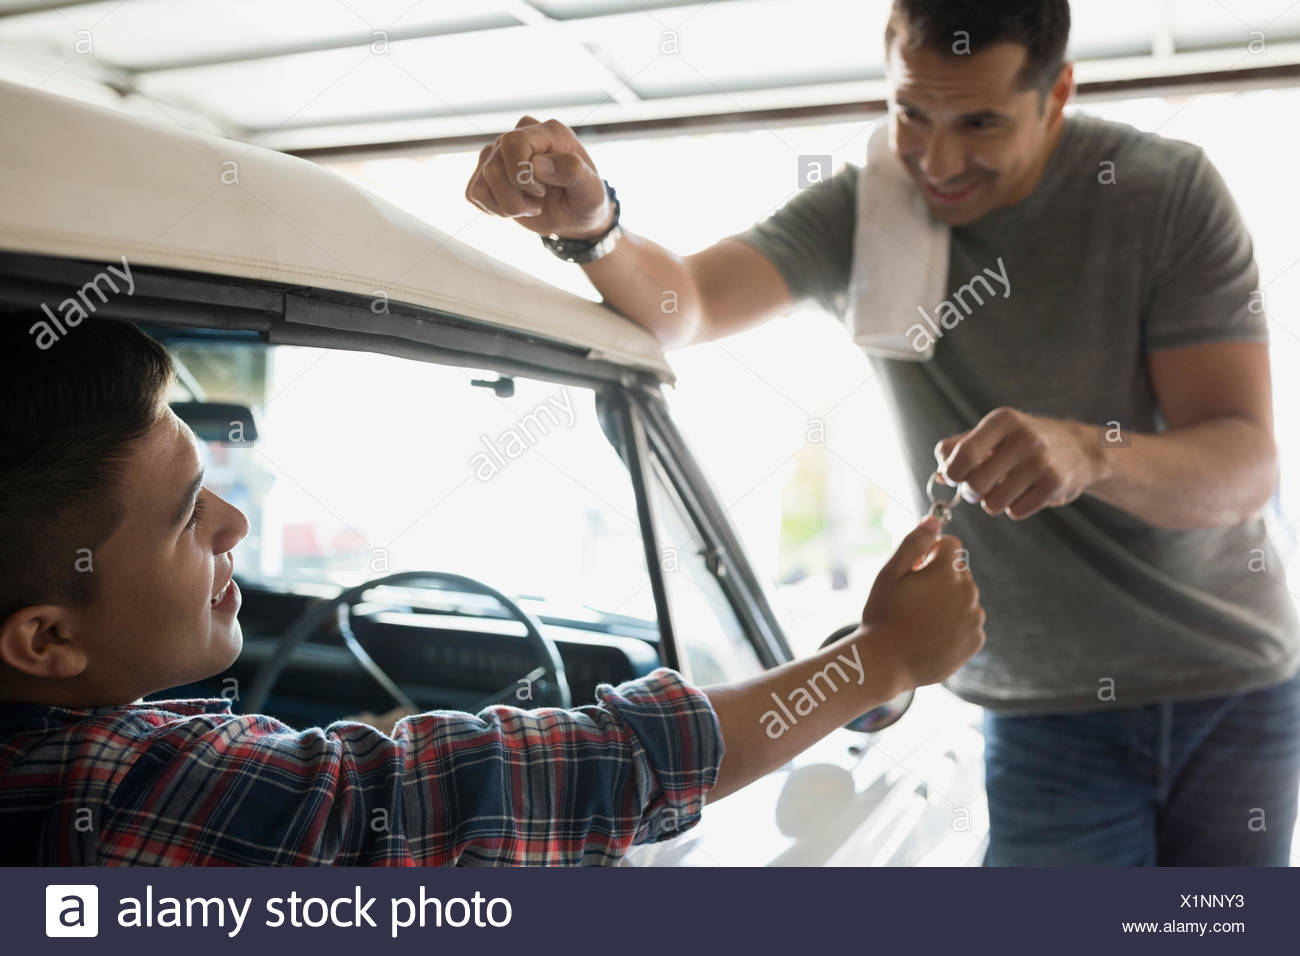 Father giving son keys to vintage car in garage - Stock Image